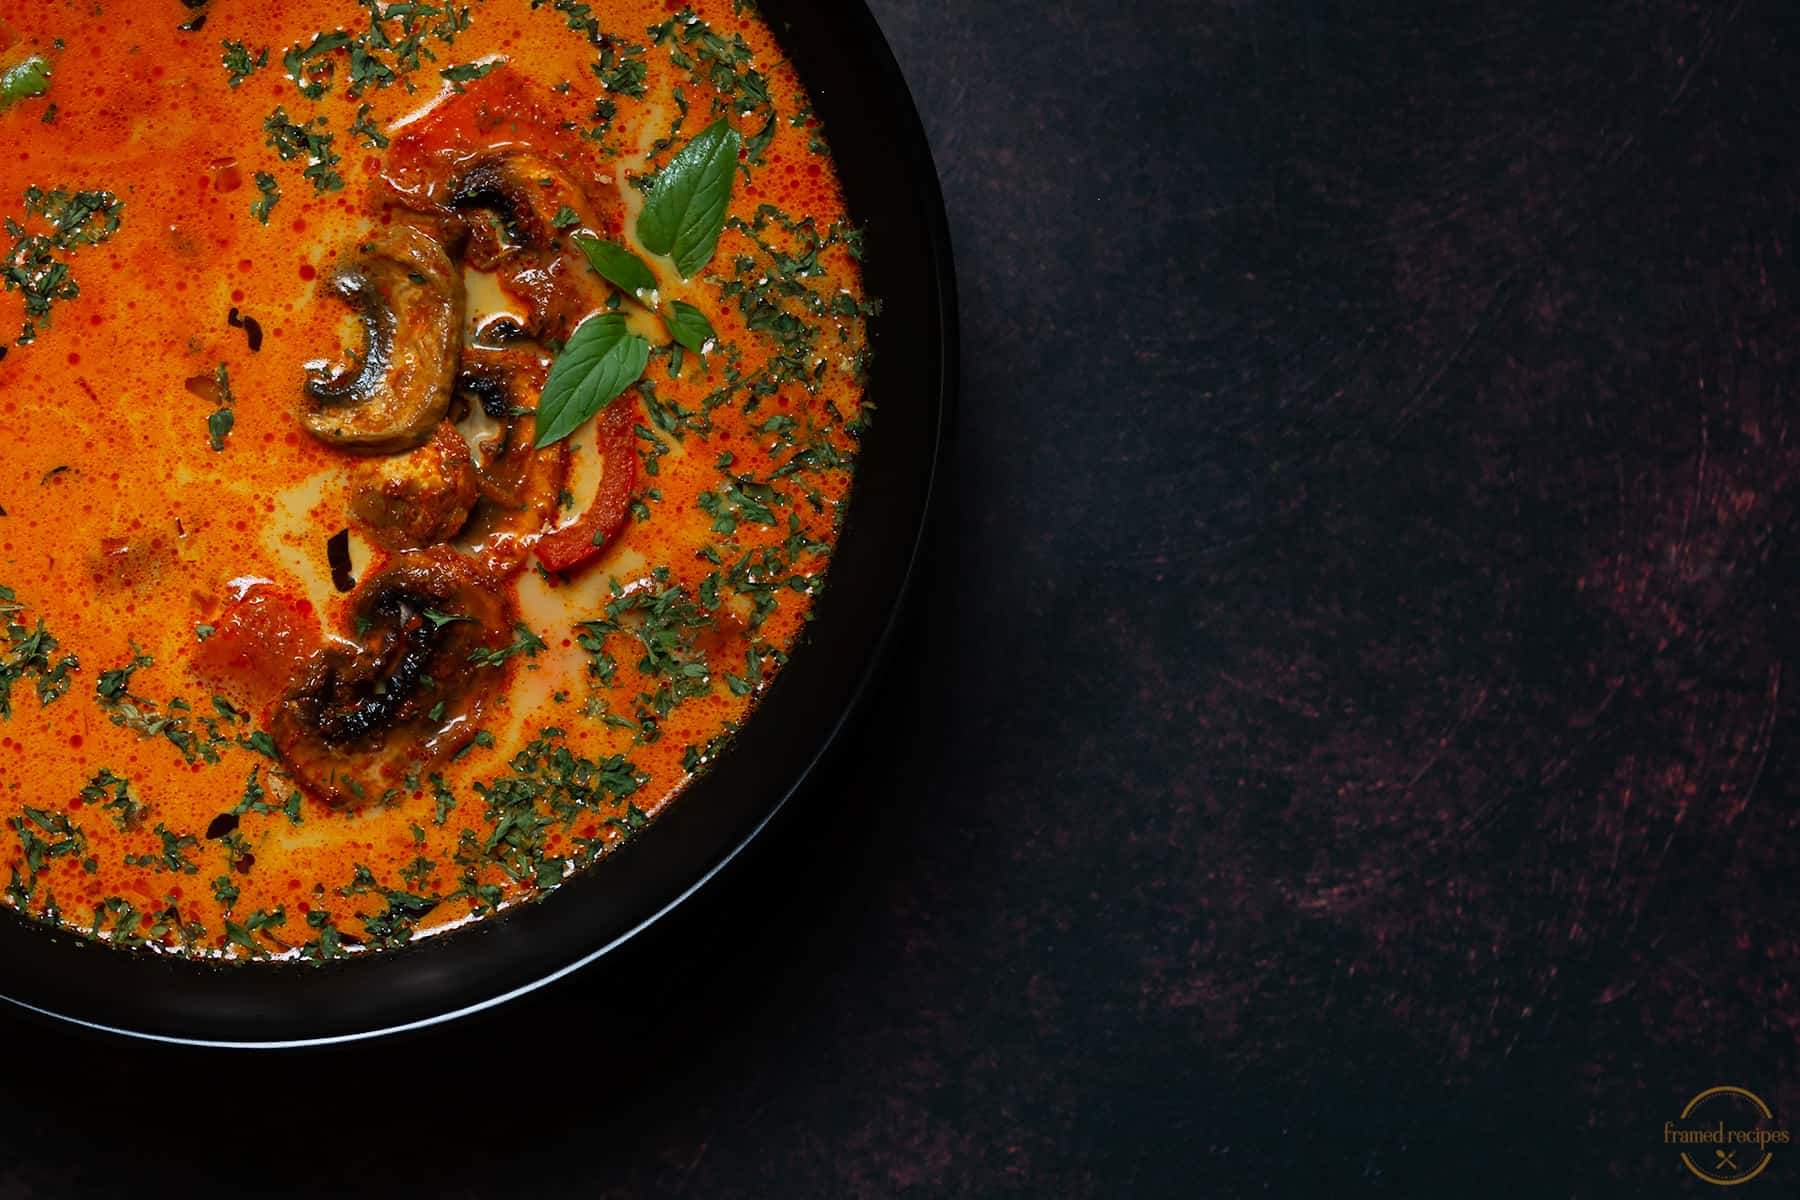 warm and comforting bowl of curry flavored thai coocnut milk soup